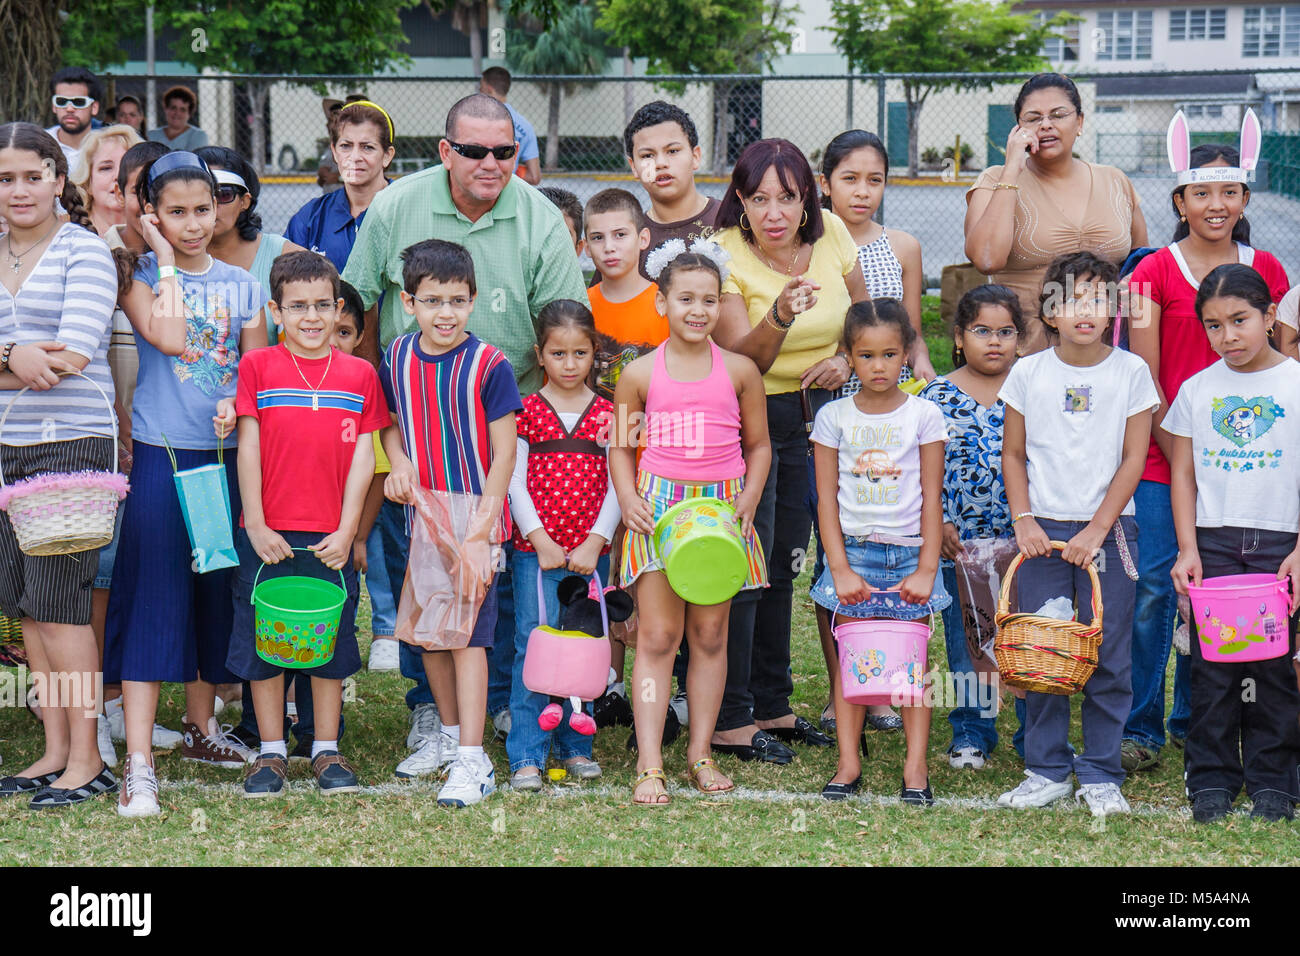 Hispanic festive tradition egg hunt boys girls outdoor starting line parent anticipate compete - Stock Image